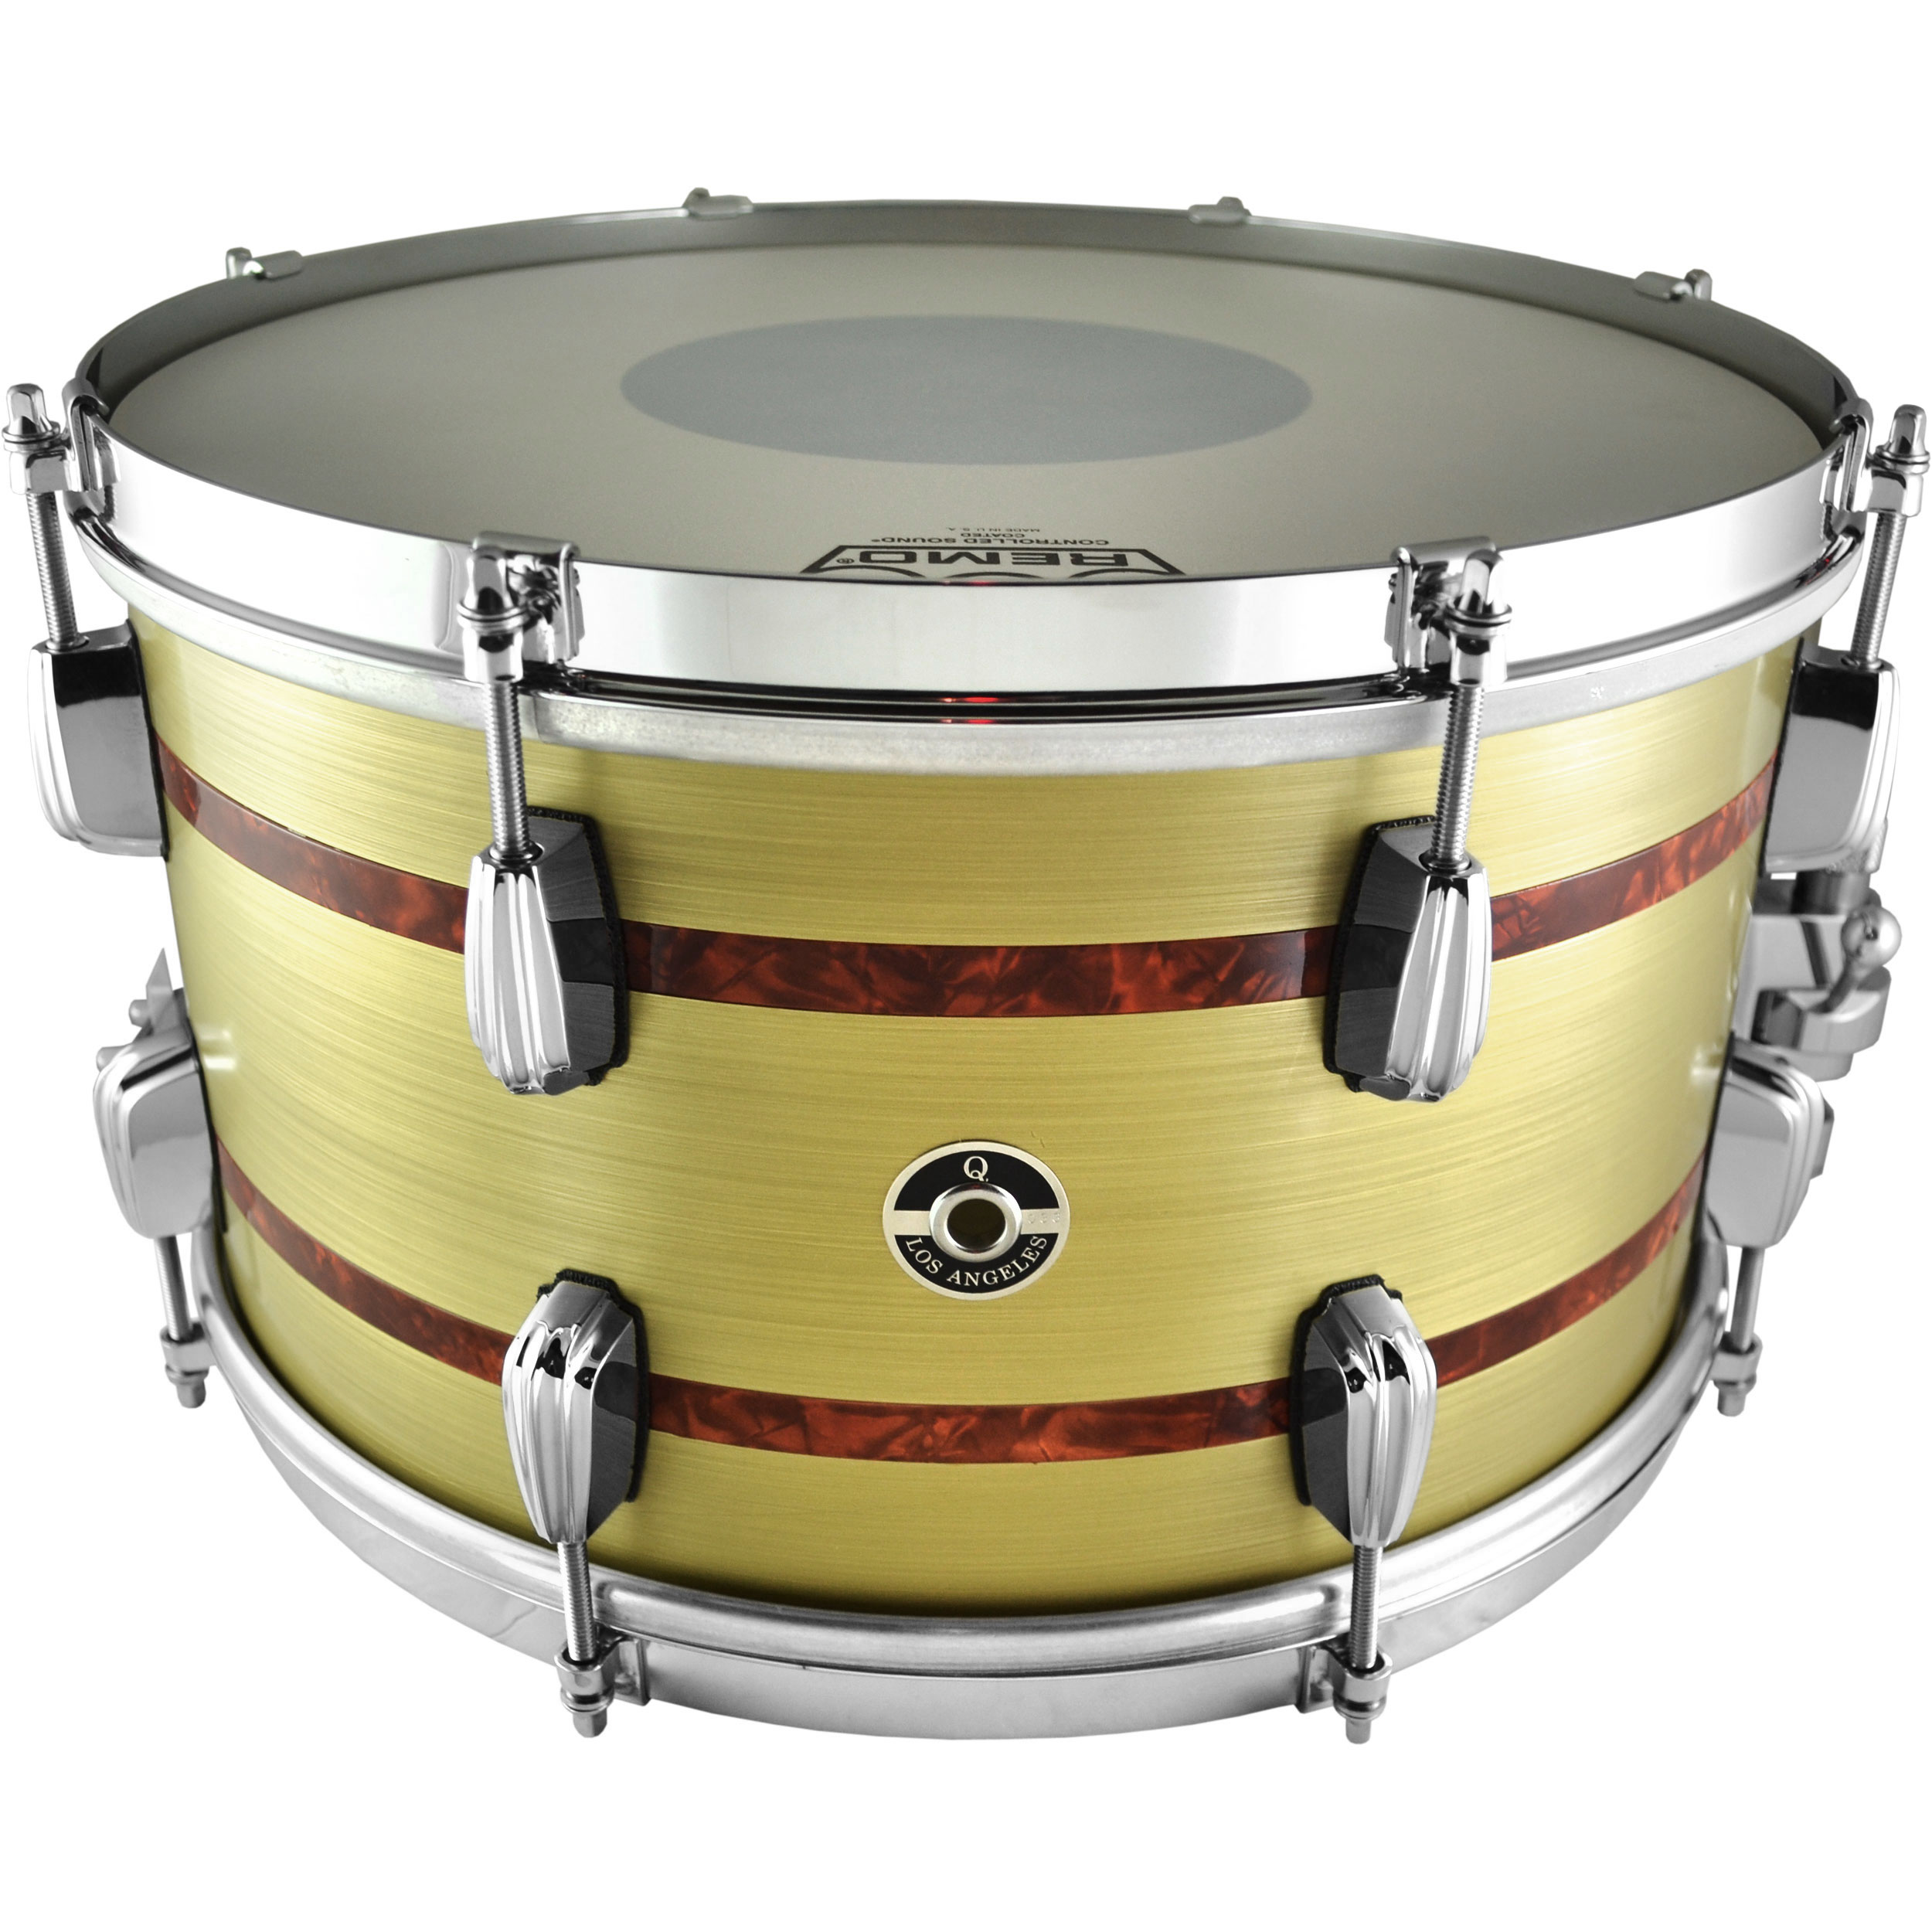 "Q Drum Co. 8"" x 14"" Brass Plate Snare Drum with Tortoiseshell Inlays"